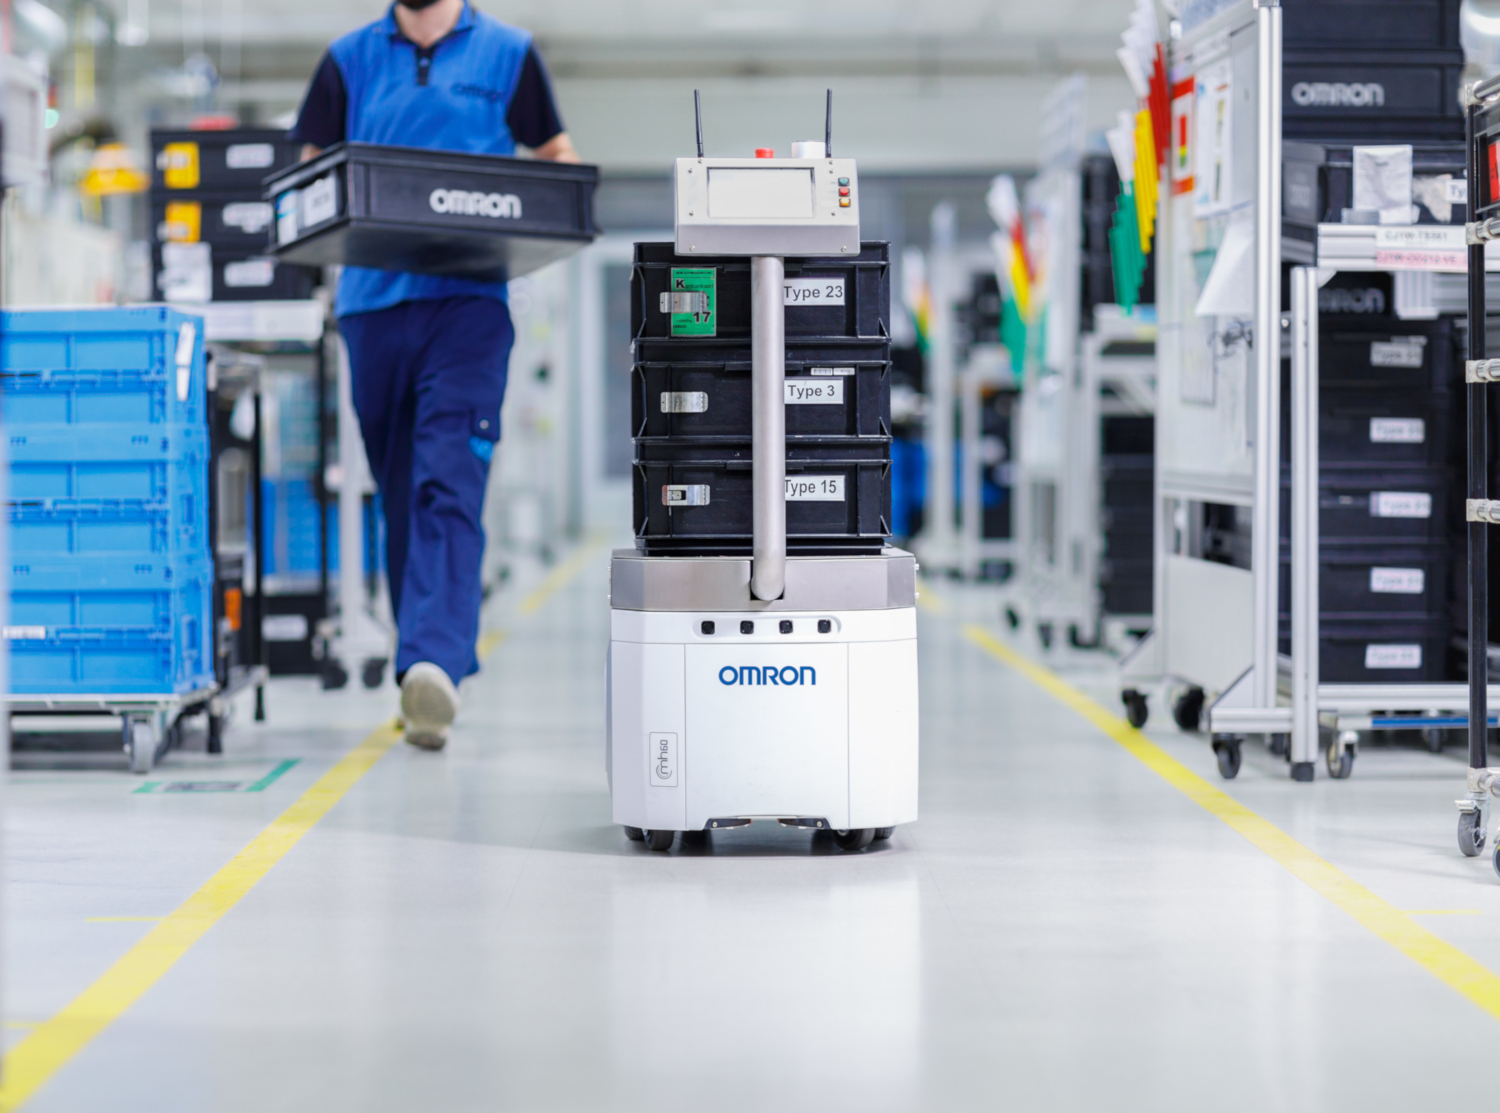 OMRON's mobile robot (credits: PressReleaseFinder / Flickr Creative Commons Attribution-NonCommercial-NoDerivs 2.0 Generic (CC BY-NC-ND 2.0))